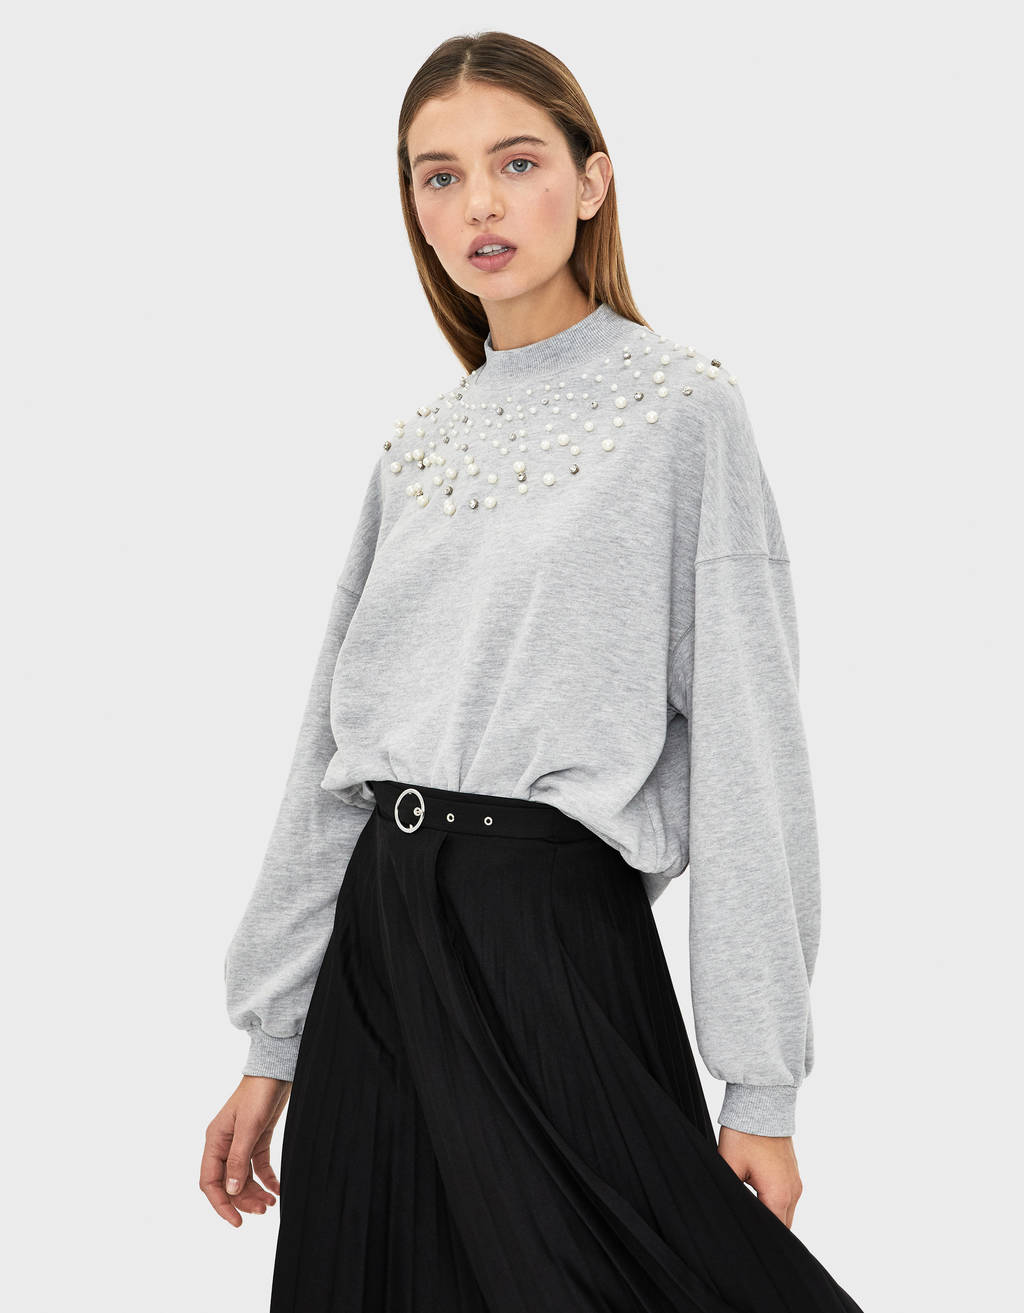 Sweatshirt embellished with faux pearls